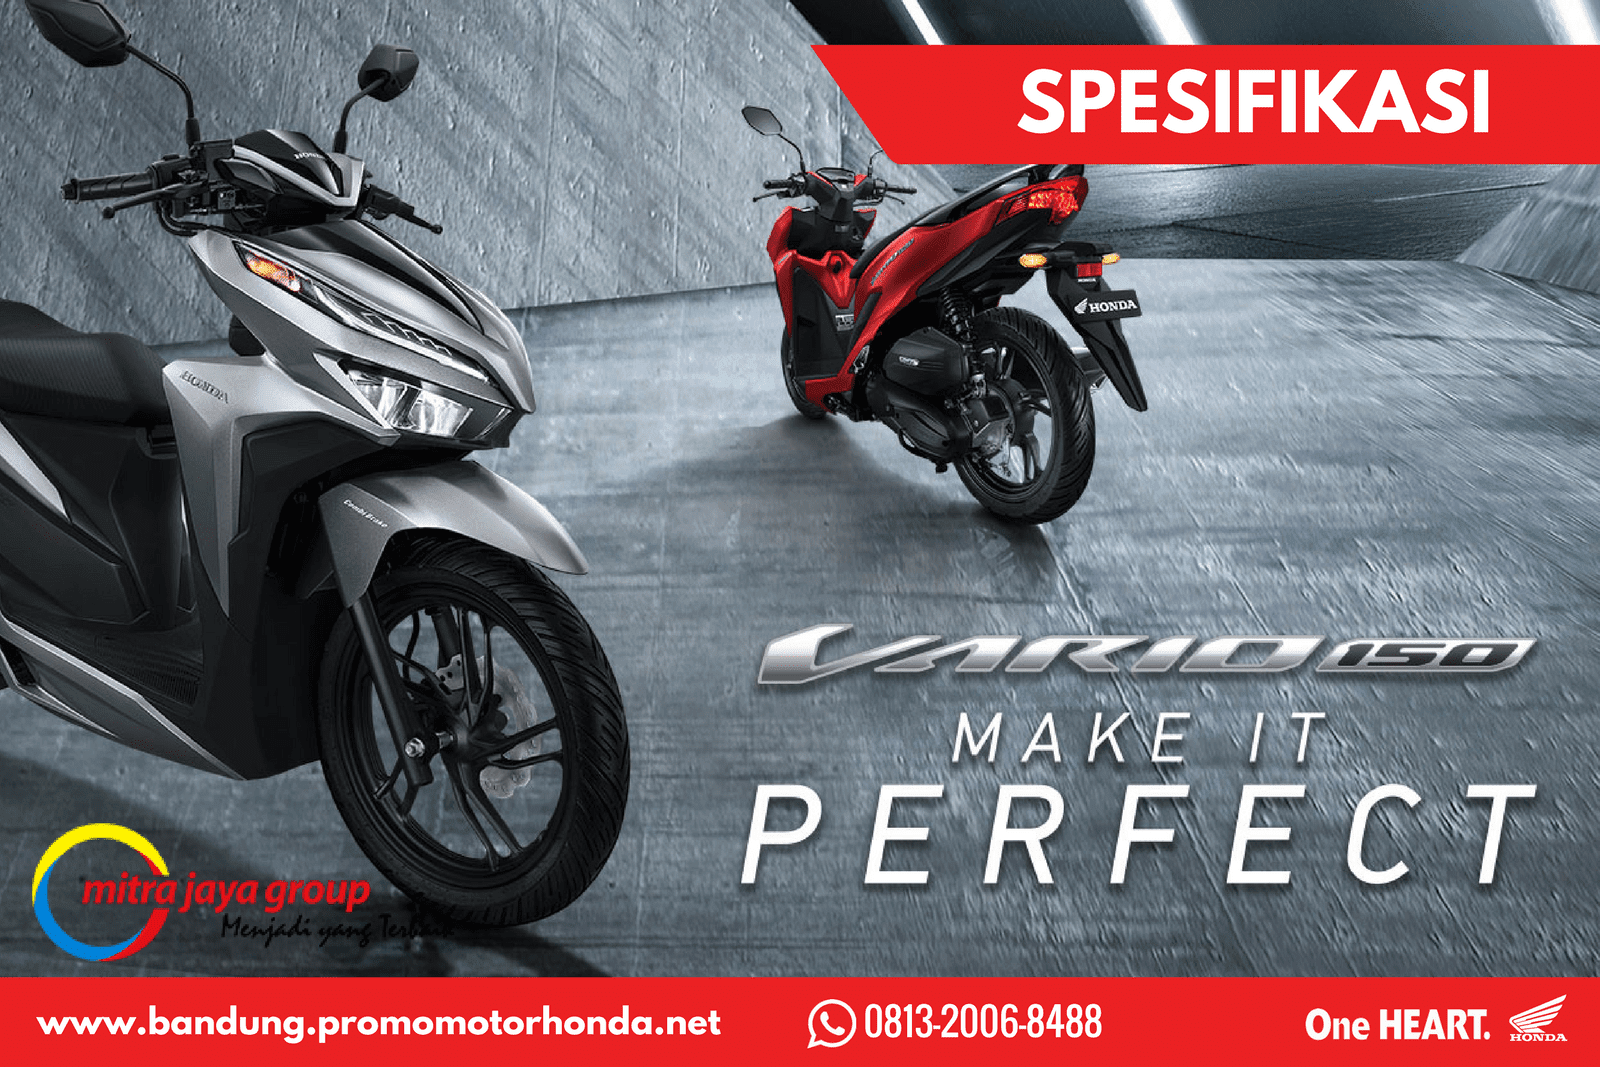 Spesifikasi All New Honda Vario 150 Tahun 2018 Facelift